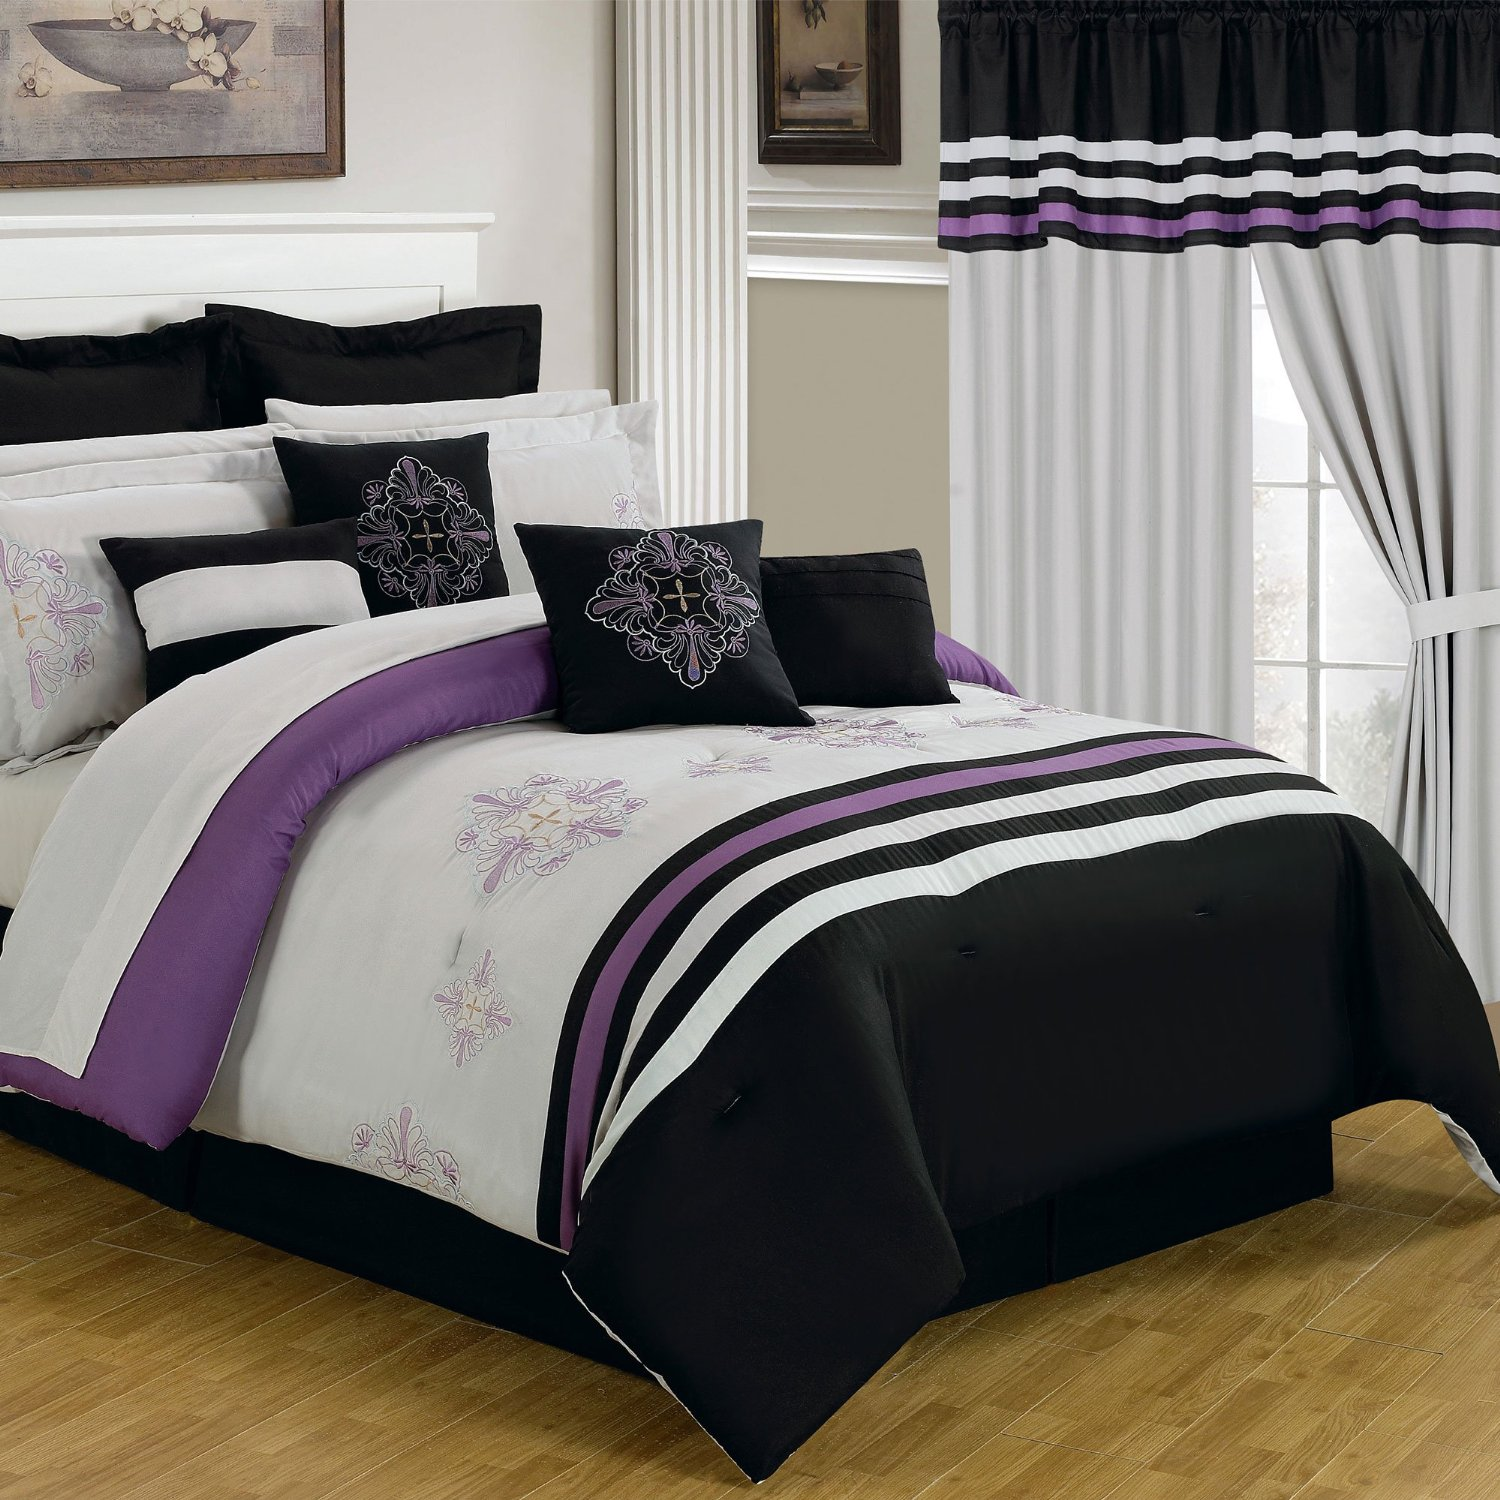 Purple Black and White Bedding Sets: Drama Uplifted